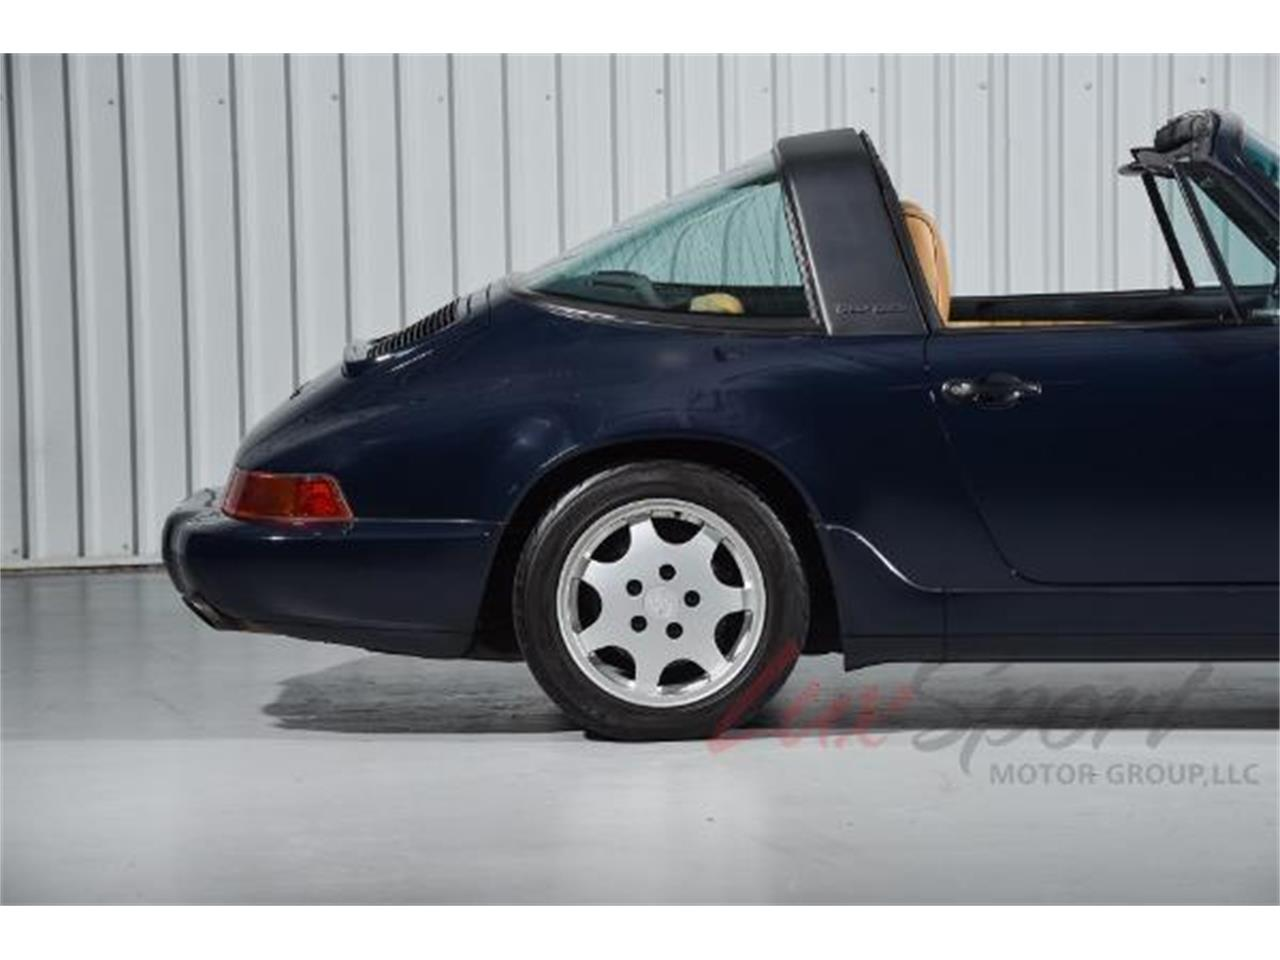 Large Picture of 1990 Porsche 964 Carrera 2 Targa located in New Hyde Park New York - MNZP